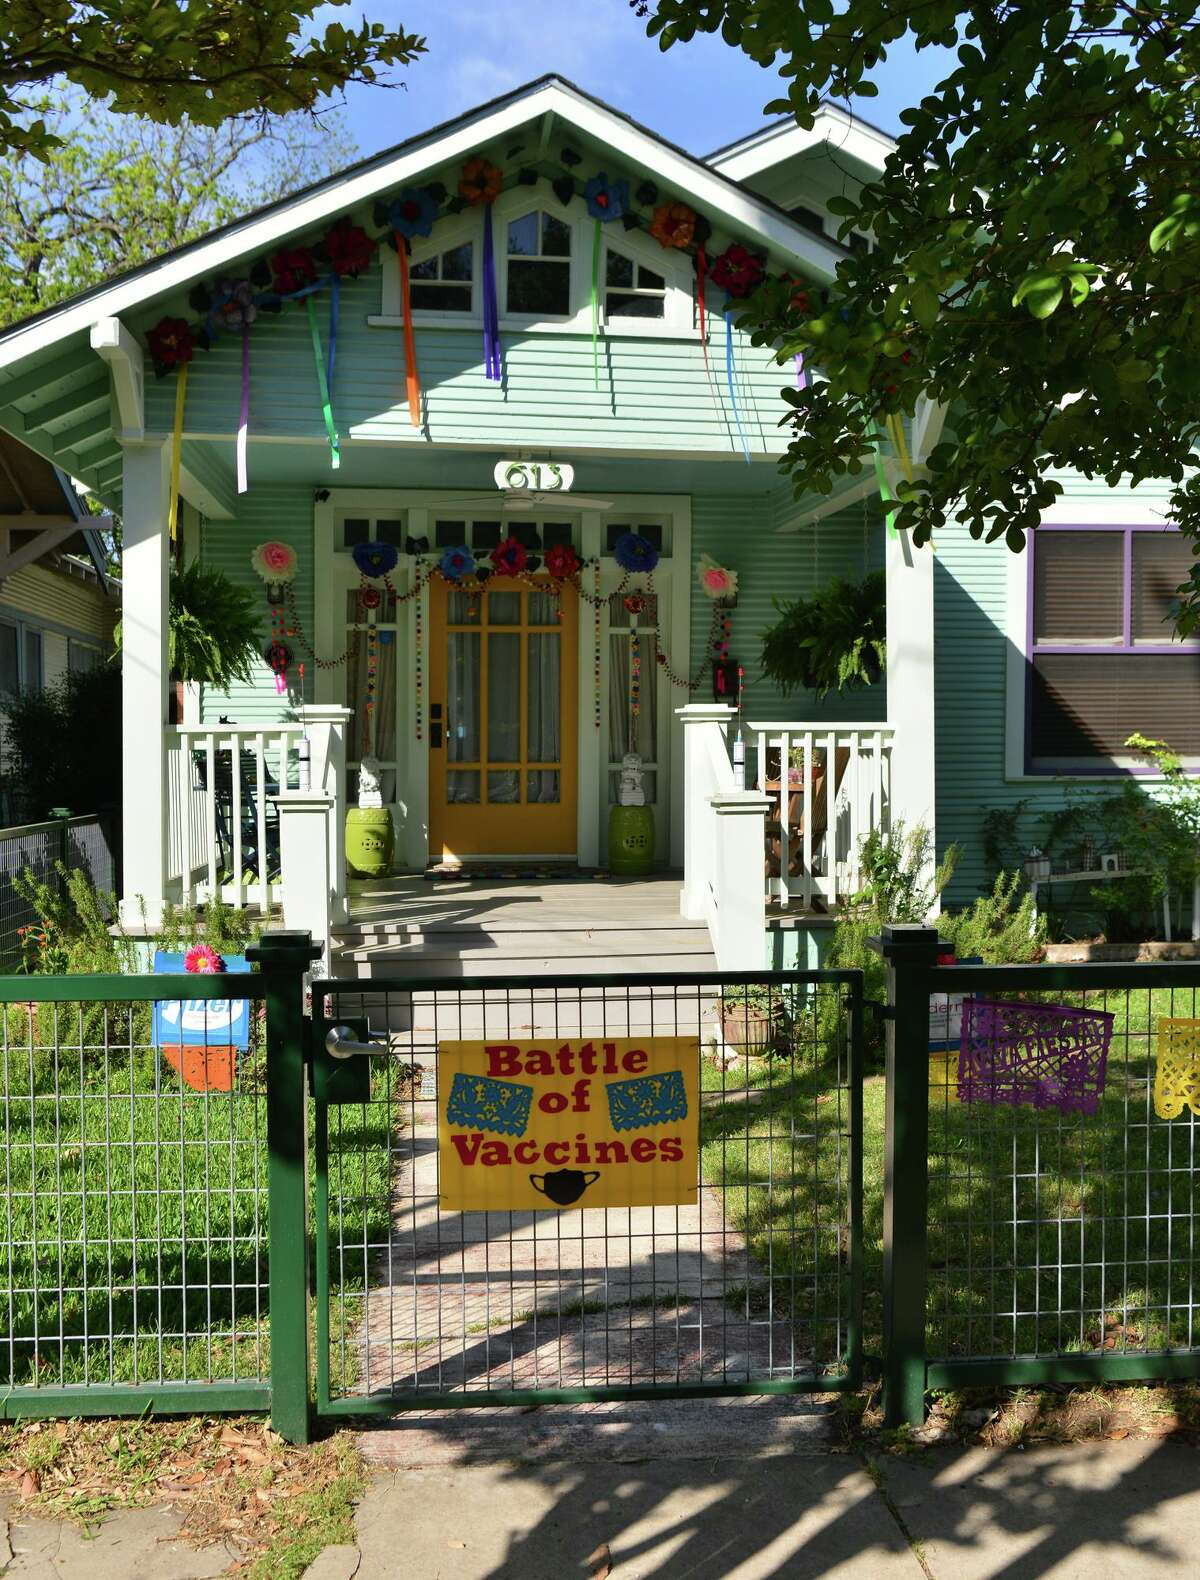 The home of artist Leigh Anne Lester and her husband Nick has a COVID-19 theme.